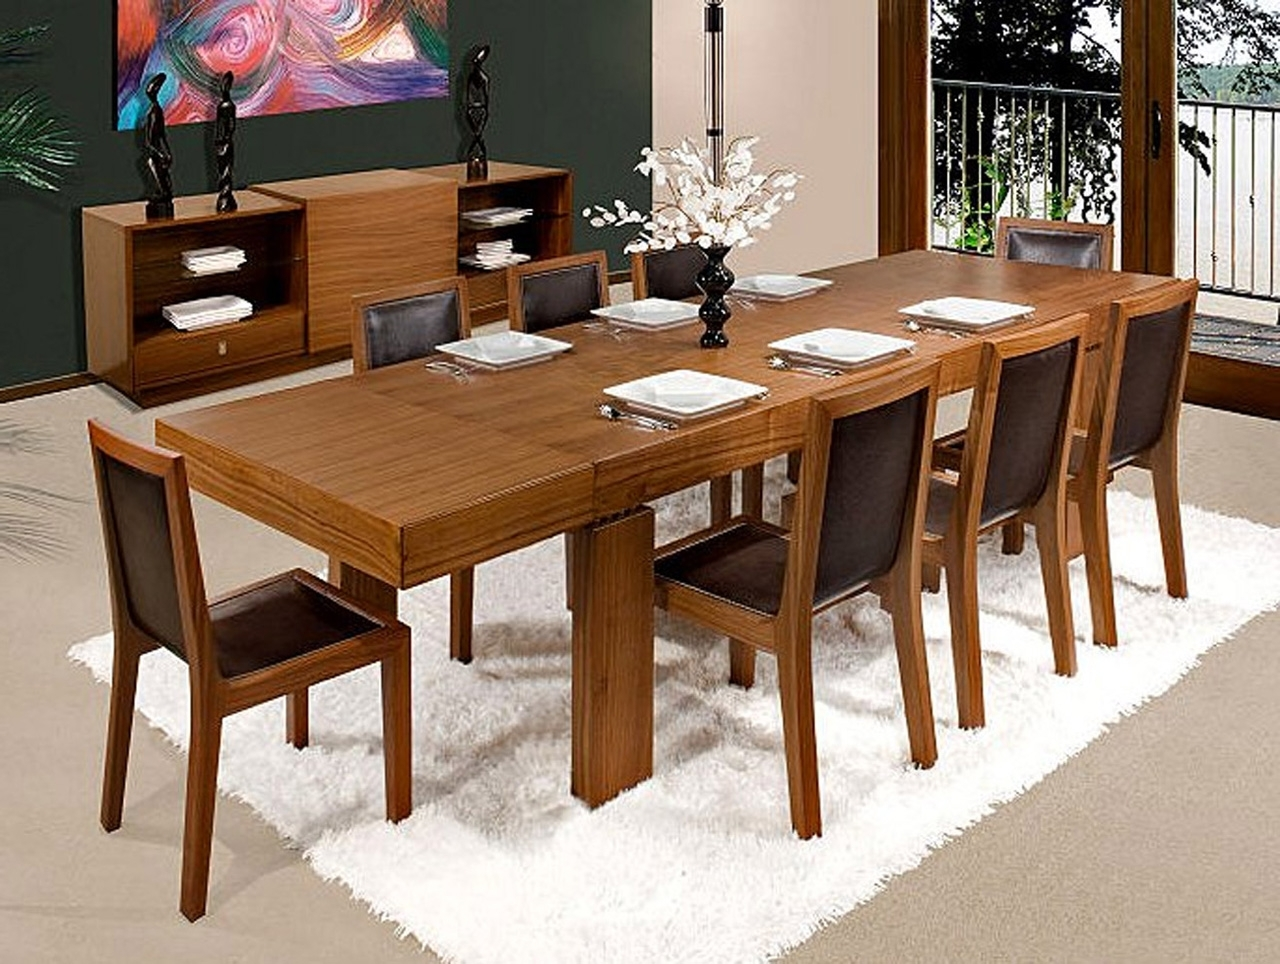 Dining Tables With 8 Seater Regarding Latest Square Dining Table For 8 Dimensions In Smashing 8 Seat Table Large (View 24 of 25)